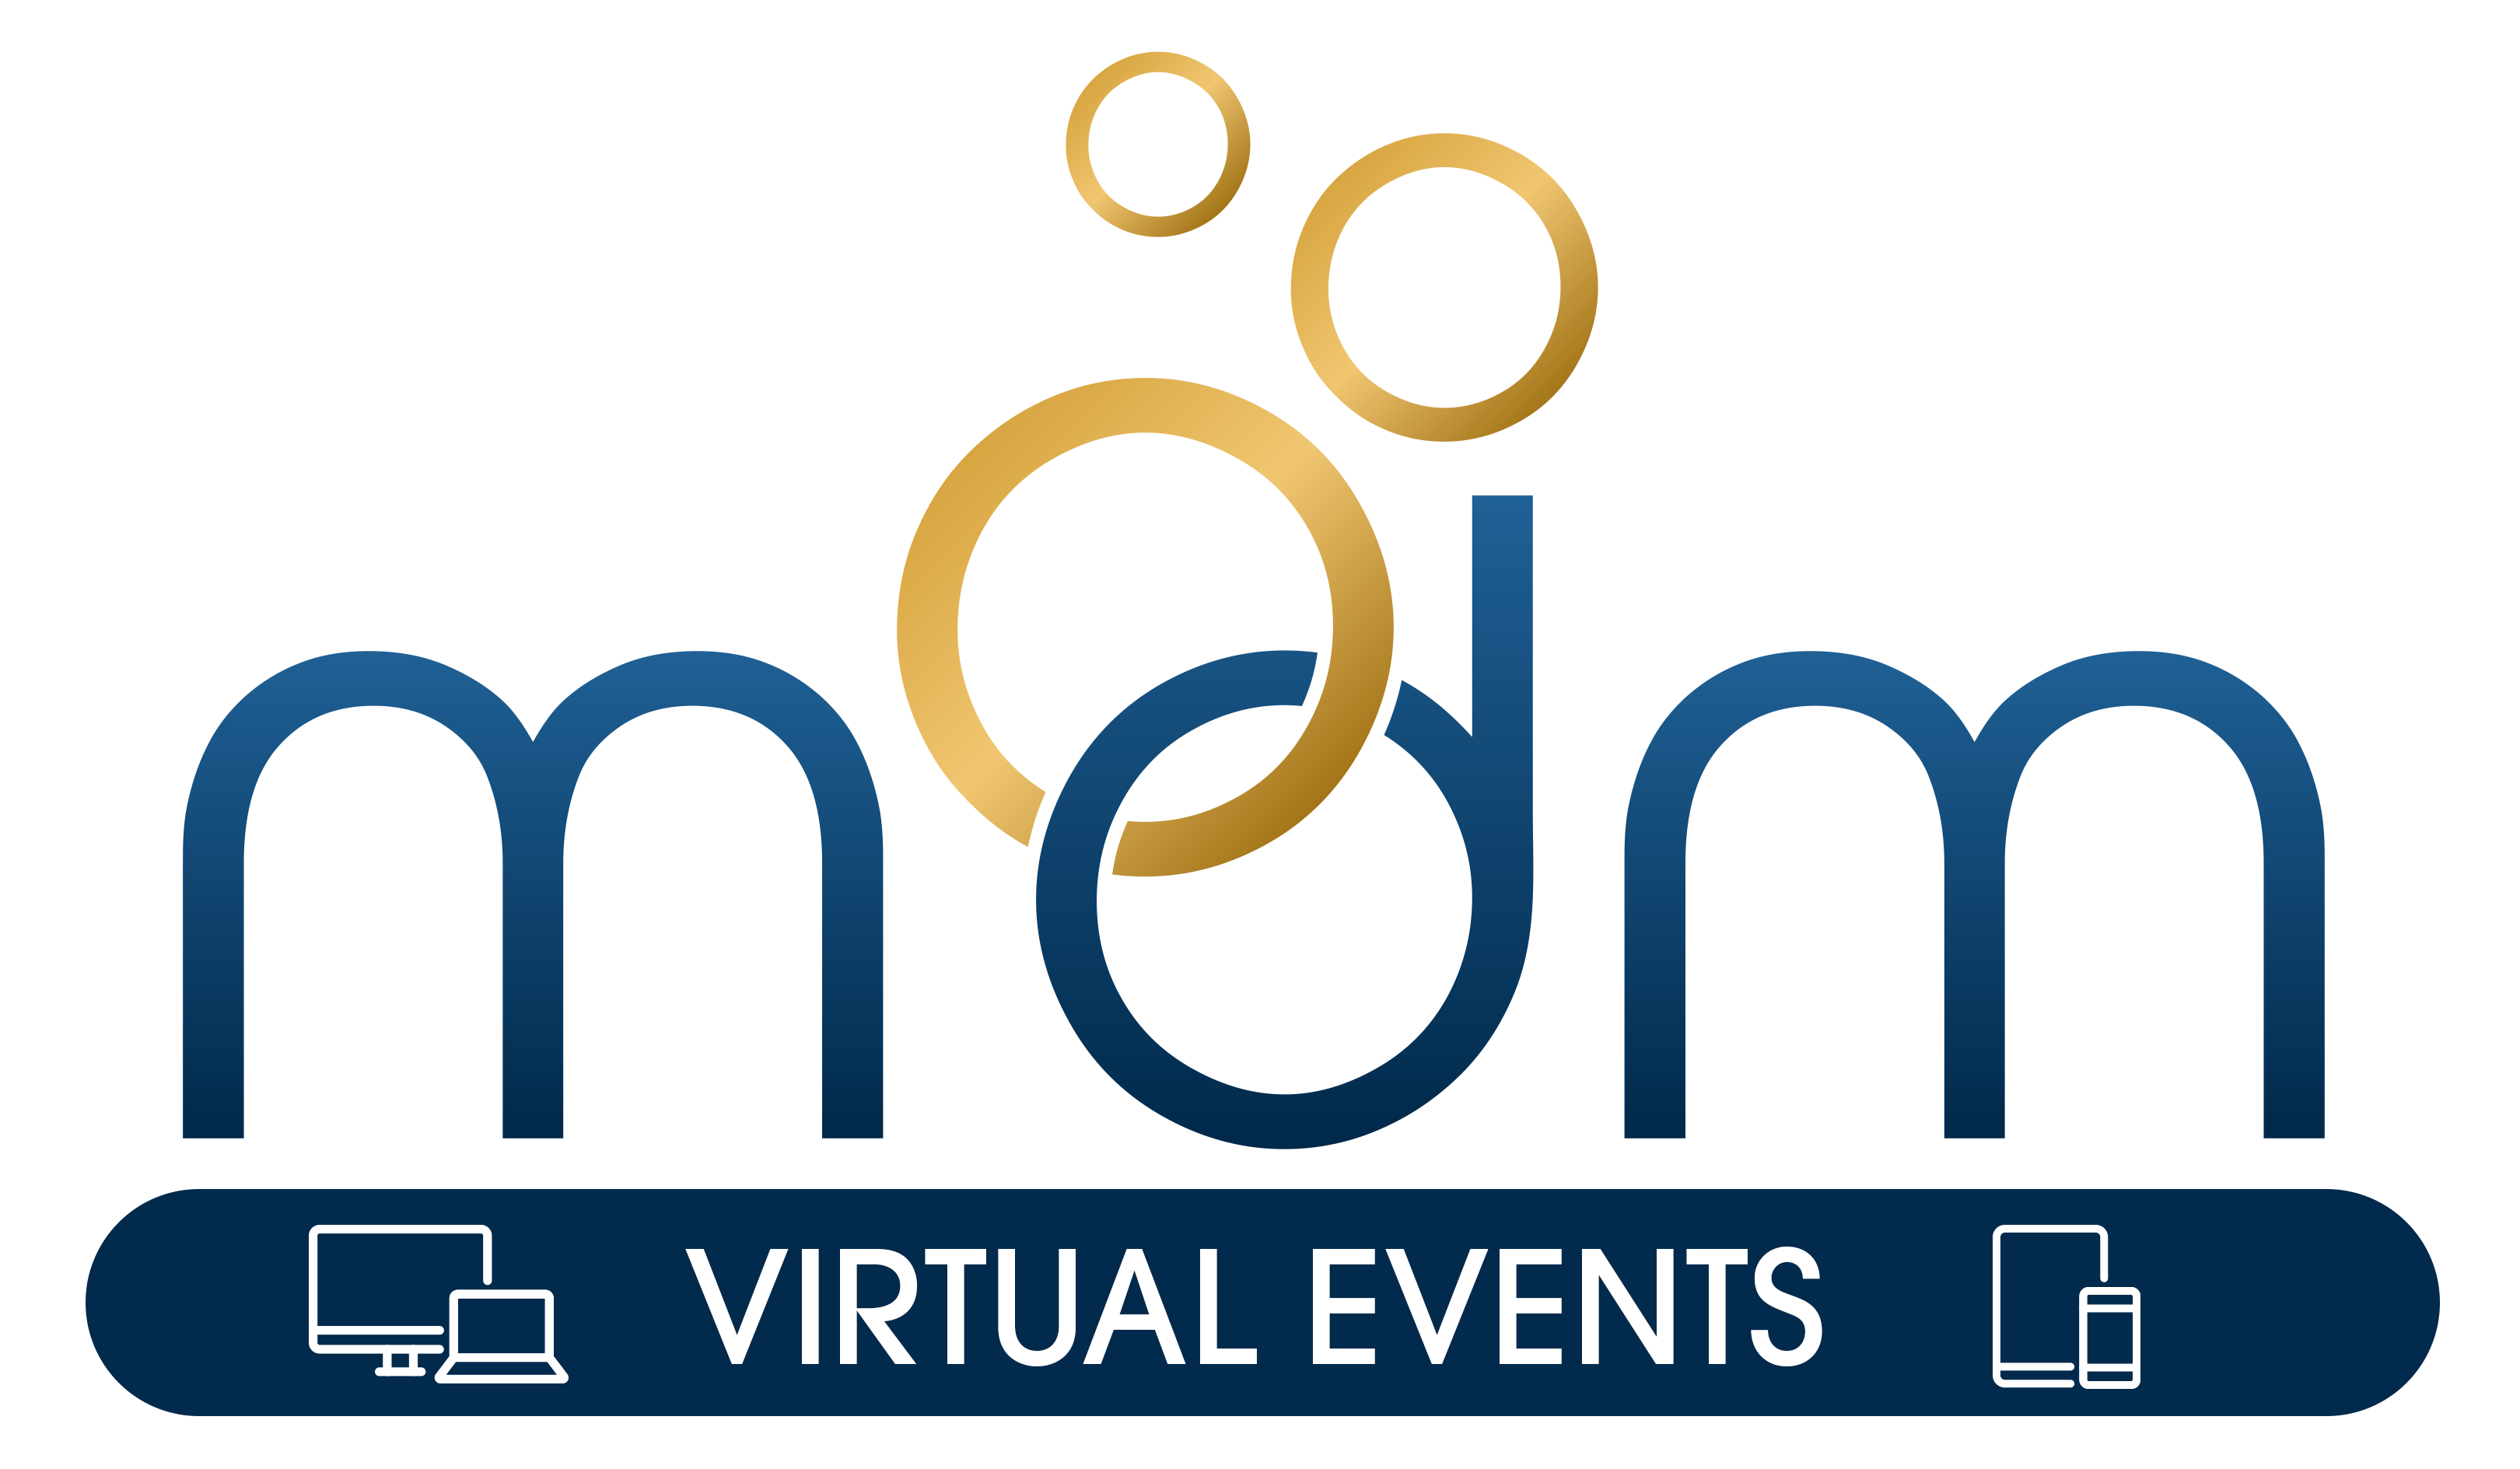 MDM VIRTUAL EVENTS